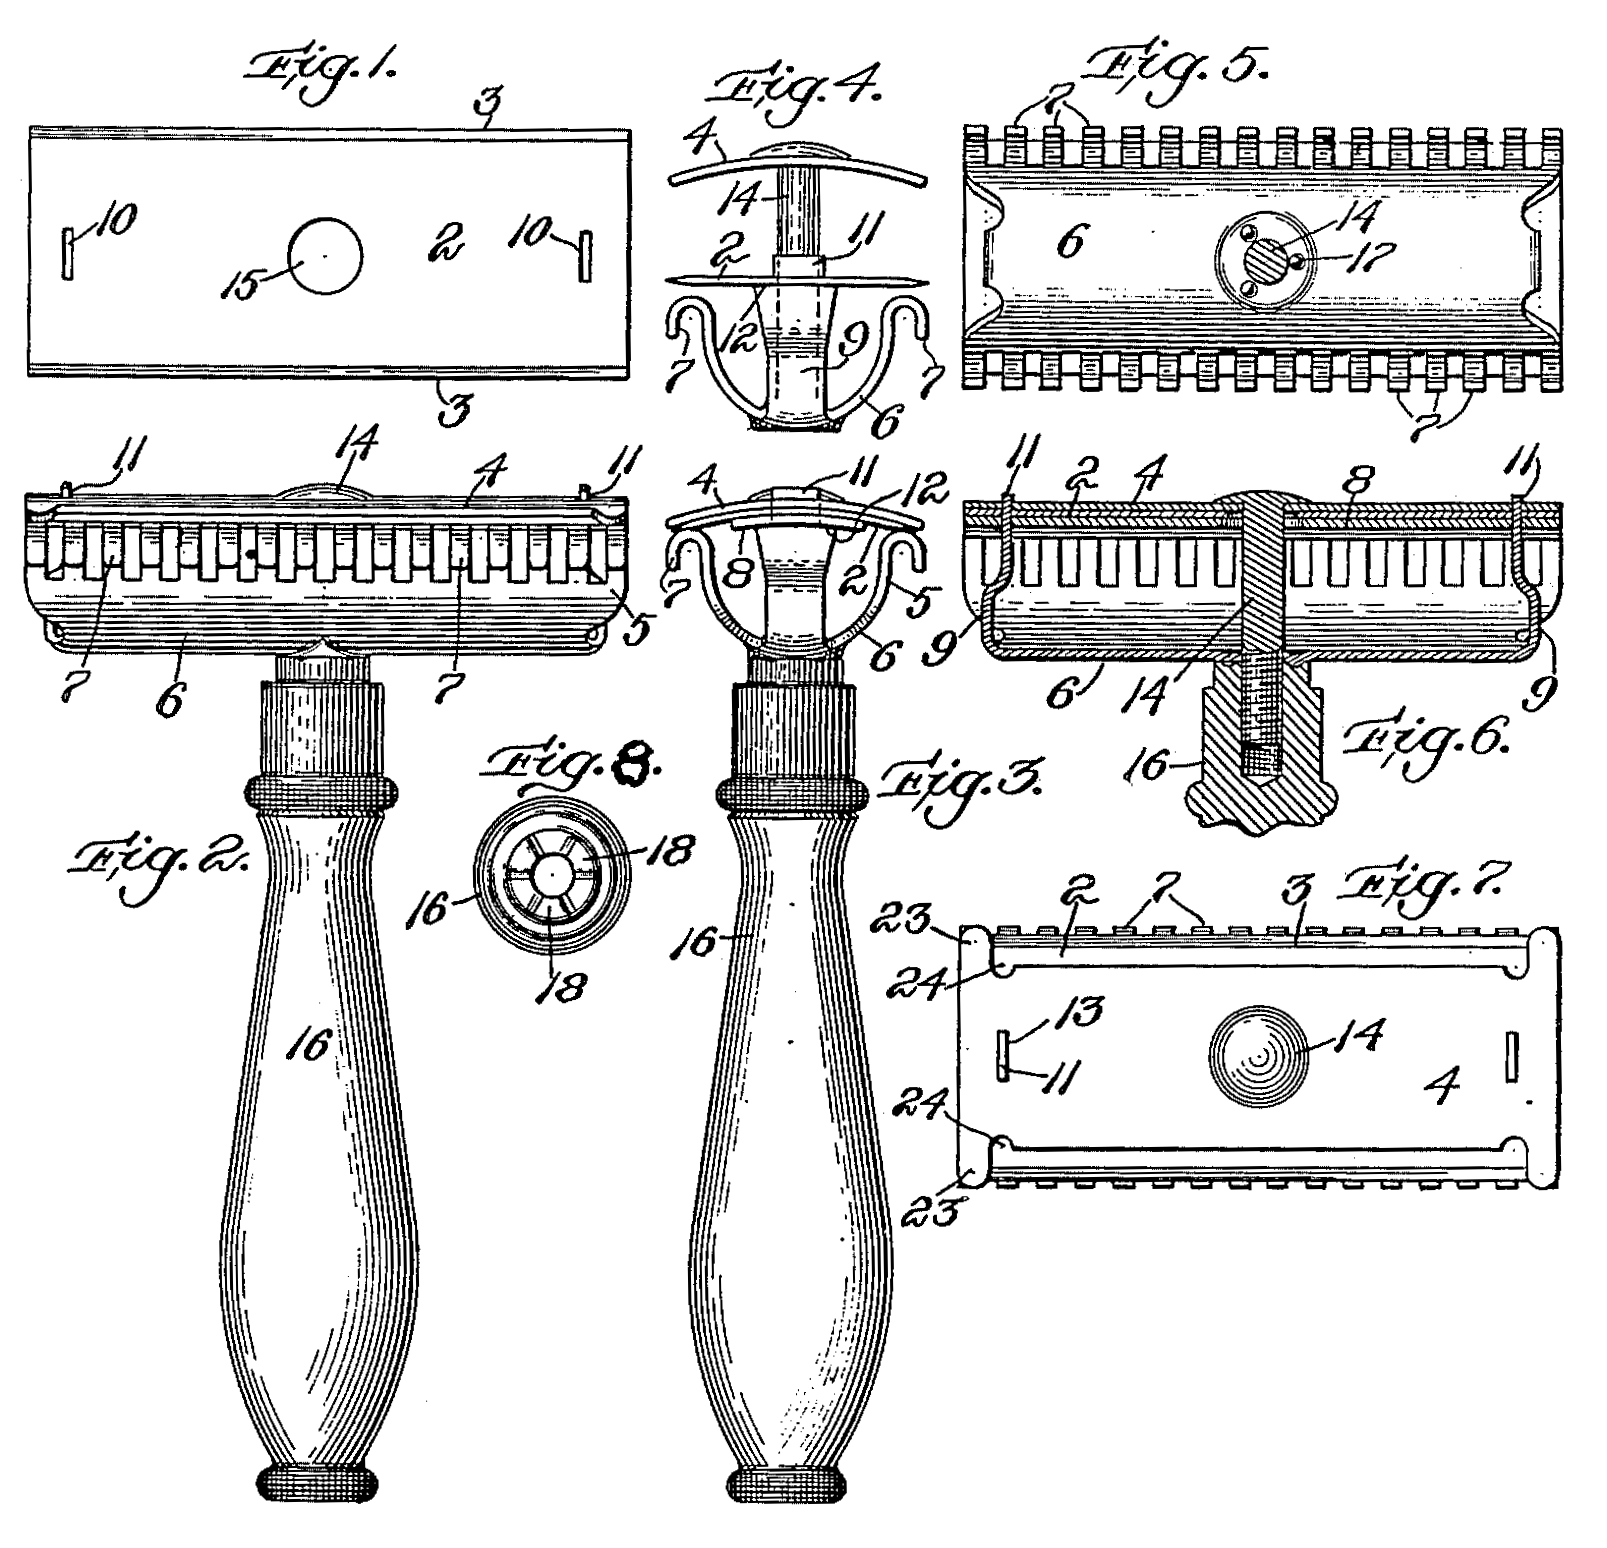 http://upload.wikimedia.org/wikipedia/commons/a/ae/US_Patent_775134.PNG